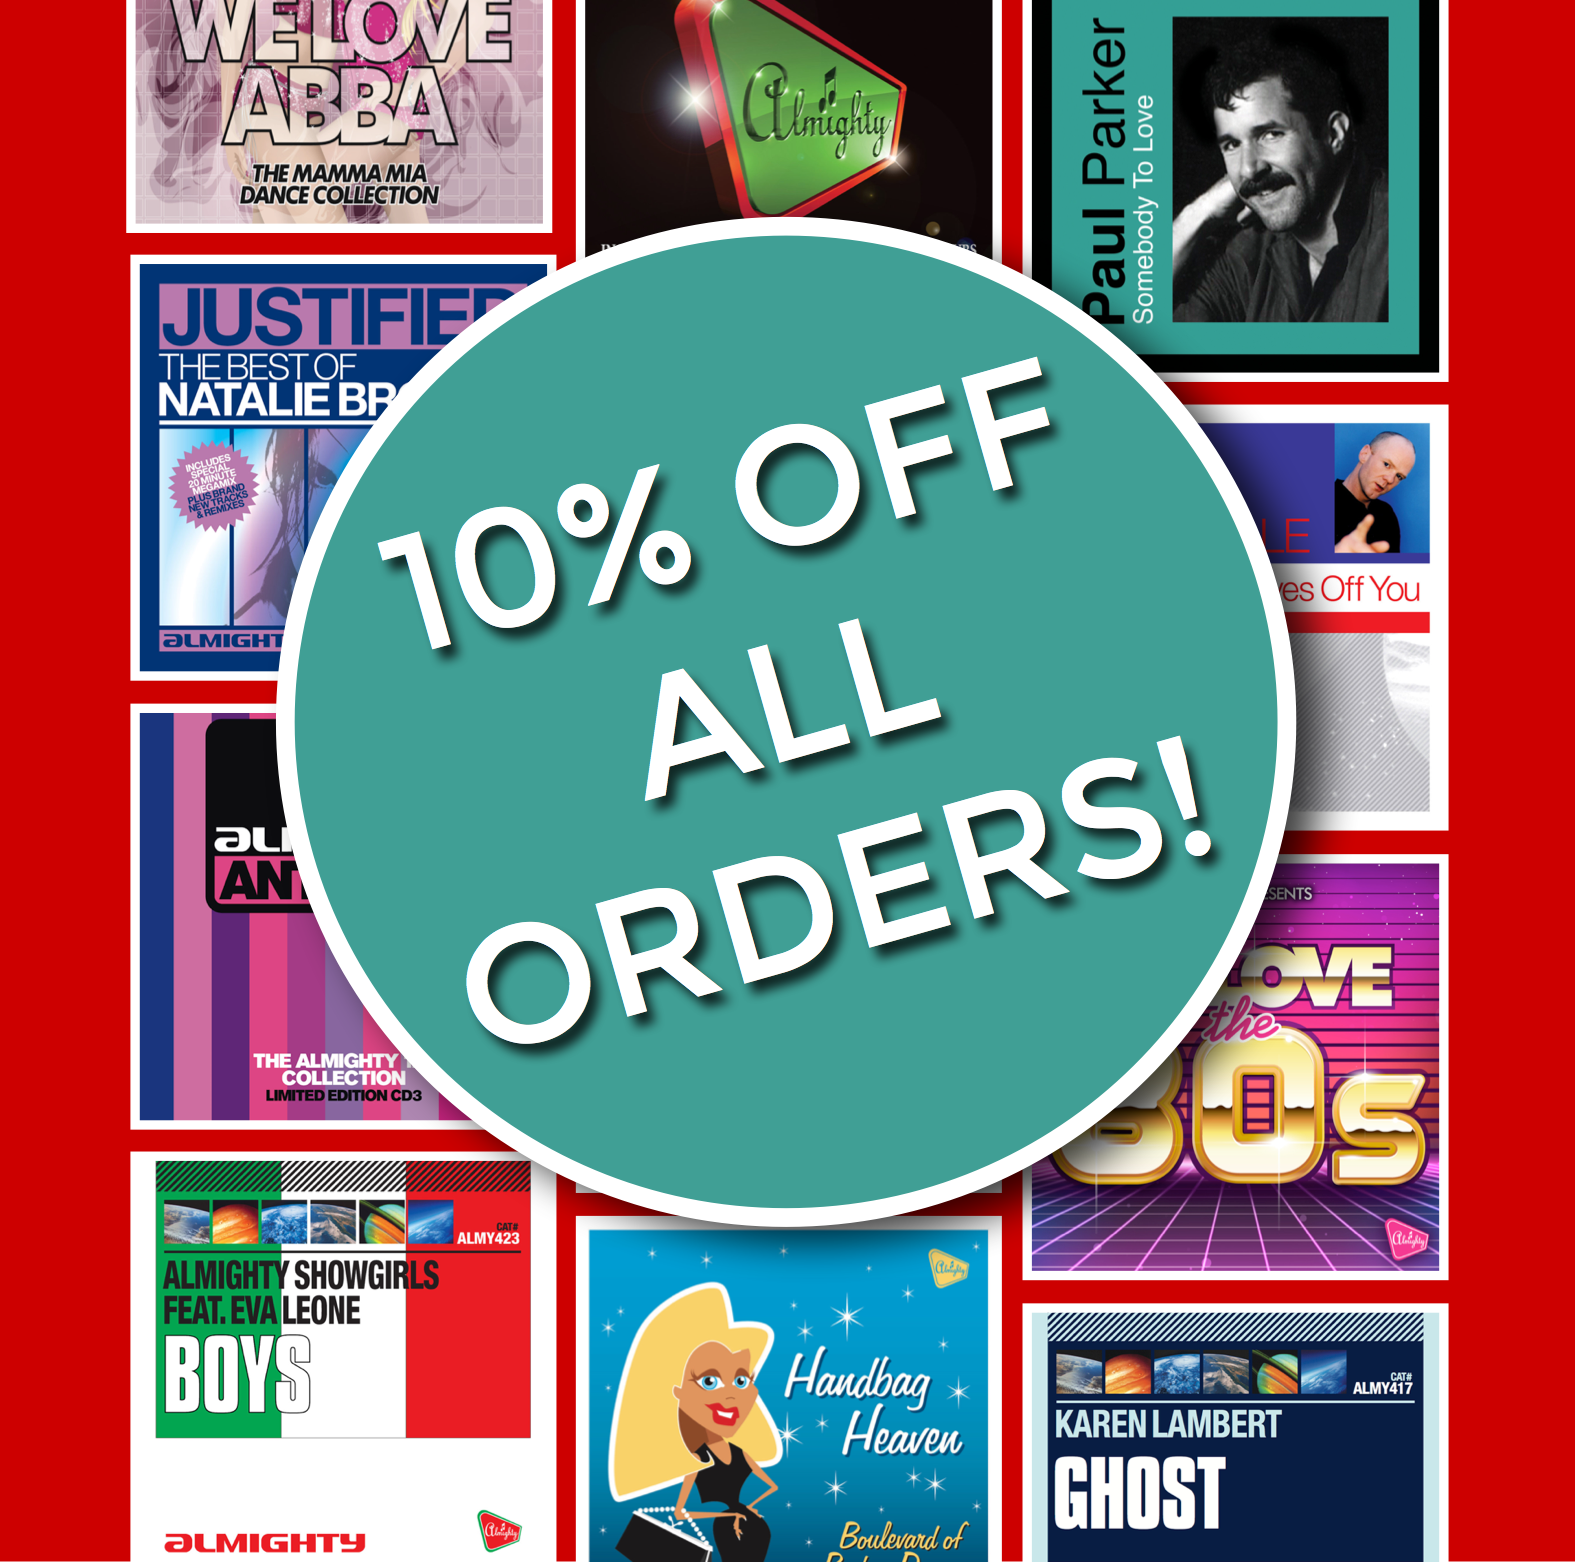 BANK HOLIDAY WEEKEND 10% DISCOUNT - Over this Bank Holiday weekend, we're giving 10% discount on ALL ORDERS from our website, with NO MINIMUM SPEND!Including both physical and digital products, enter the promo code: BANKHOLIDAY at the checkout for 10% to be deducted from your order!Offer is applicable from 00:00 Friday 24th May 2019 and runs until 23:59 on Monday 27th May 2019. Discount can only be redeemed during this time. Discount code must be entered at the checkout at the time of placing the order and cannot be redeemed afterwards. If you have any problems using the code, please email us at info@almightyrecords.com so one of the team can help.